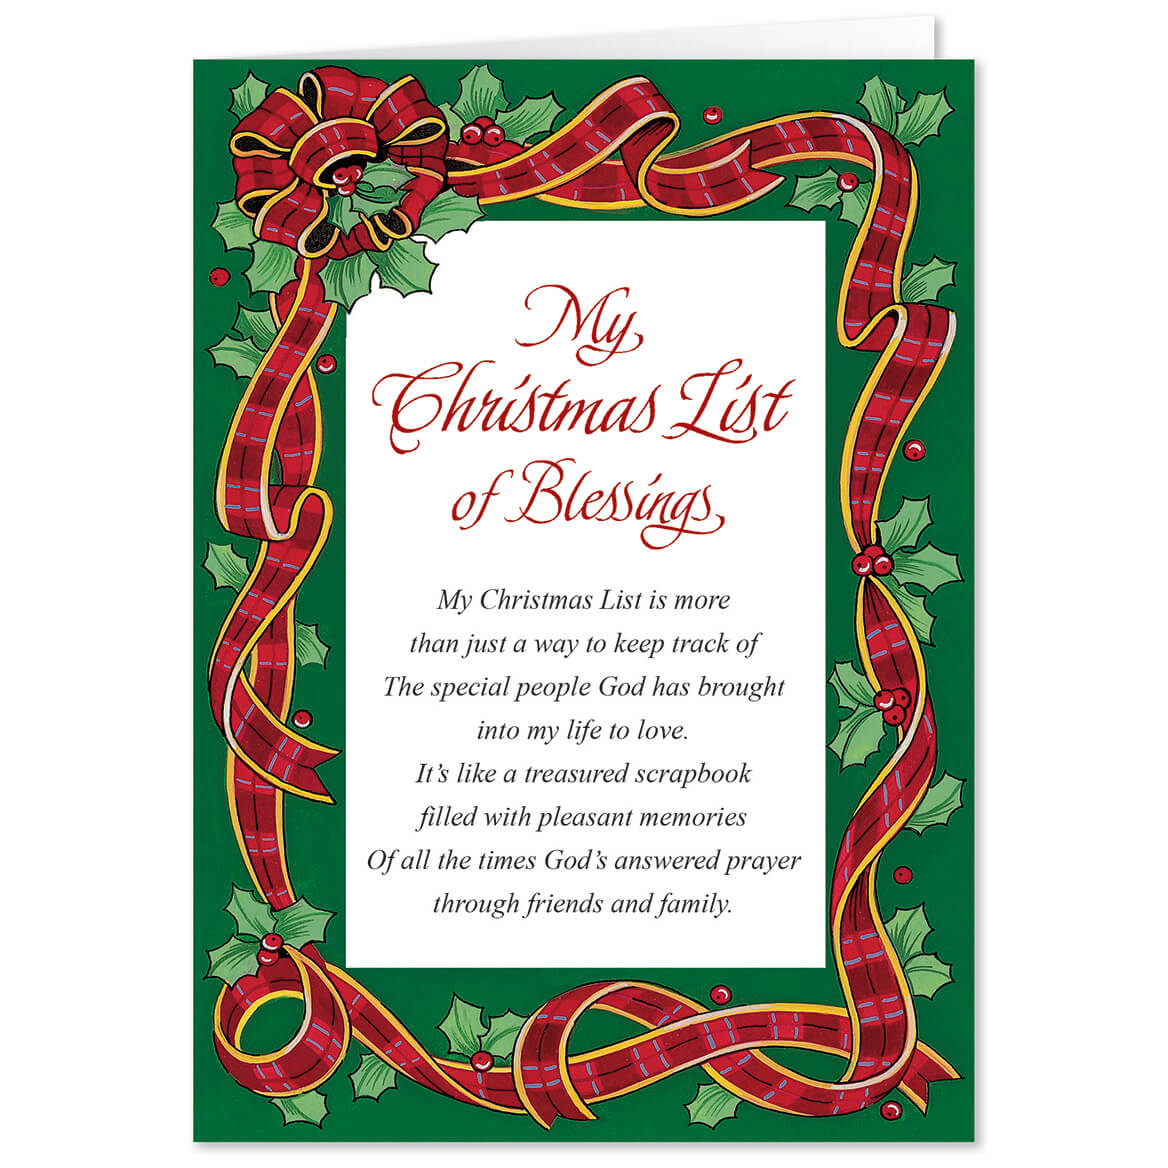 Personalized my christmas list christmas card set of 20 miles kimball personalized my christmas list christmas card set of 20 kristyandbryce Choice Image